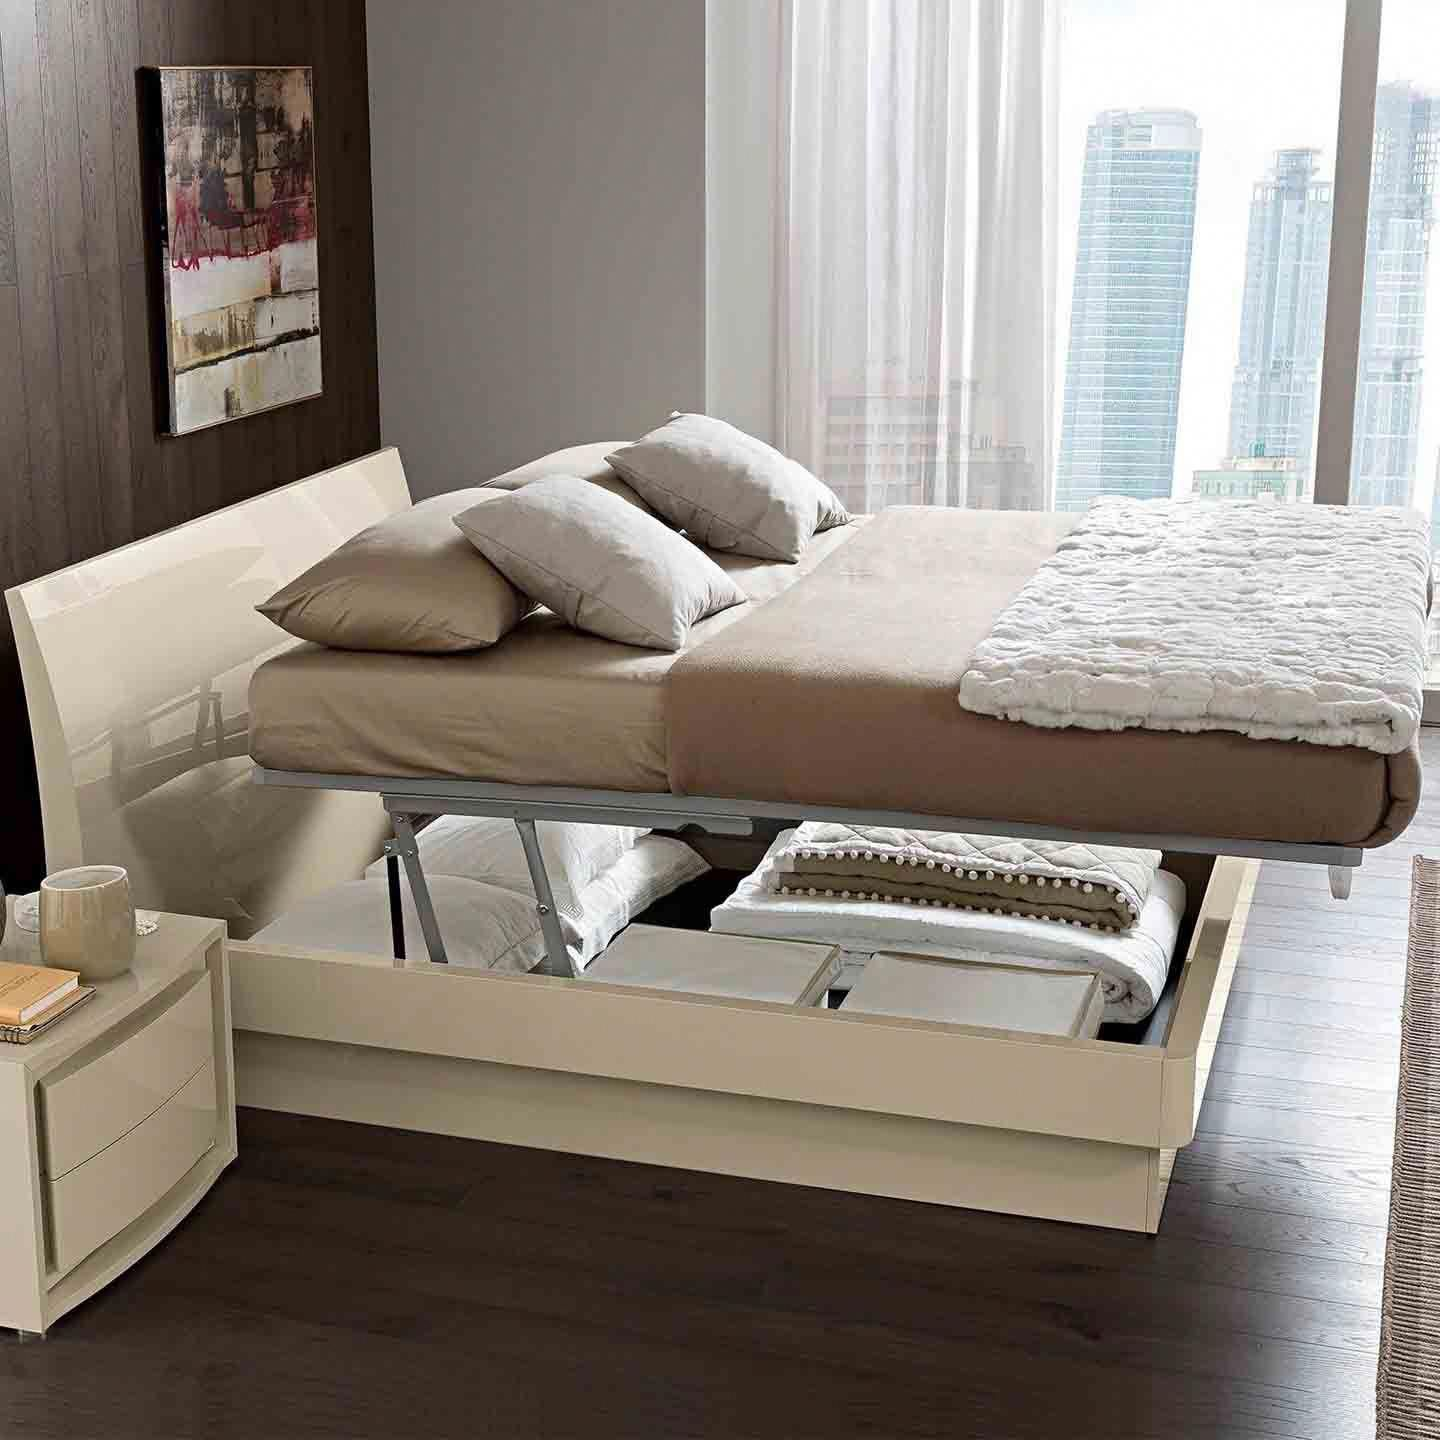 Bedroom Low Cost Small Bedroom Storage Ideas Easy Organization Option And Amusing Pictures Be In 2020 Small Bedroom Ideas For Couples Small Room Bedroom Bedroom Design